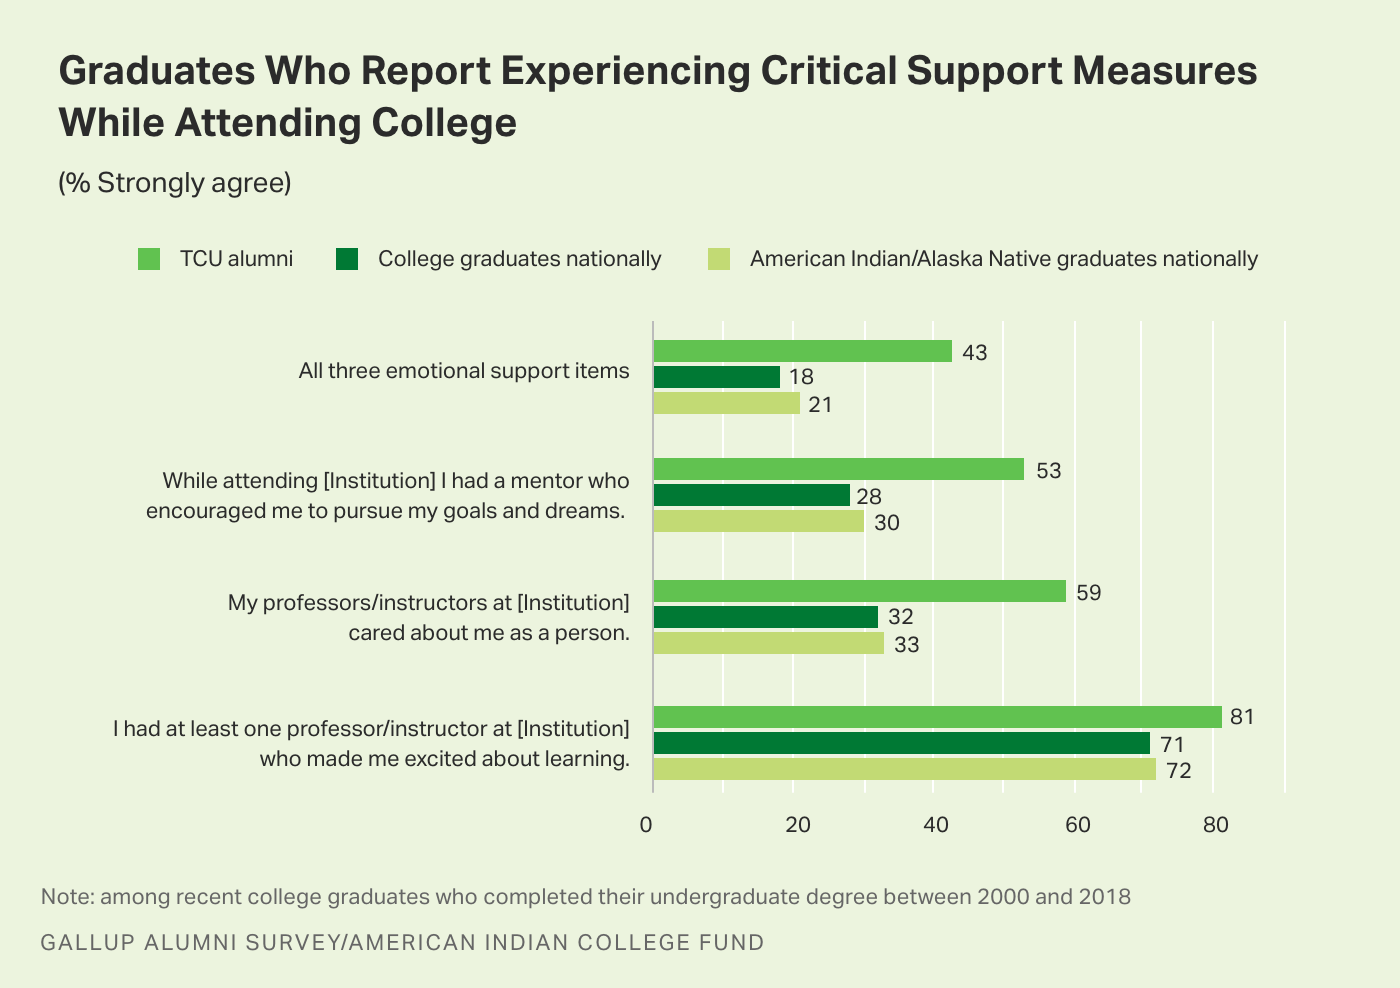 Bar graph. The percentages of graduates who strongly agree they experienced critical support measures while attending college.